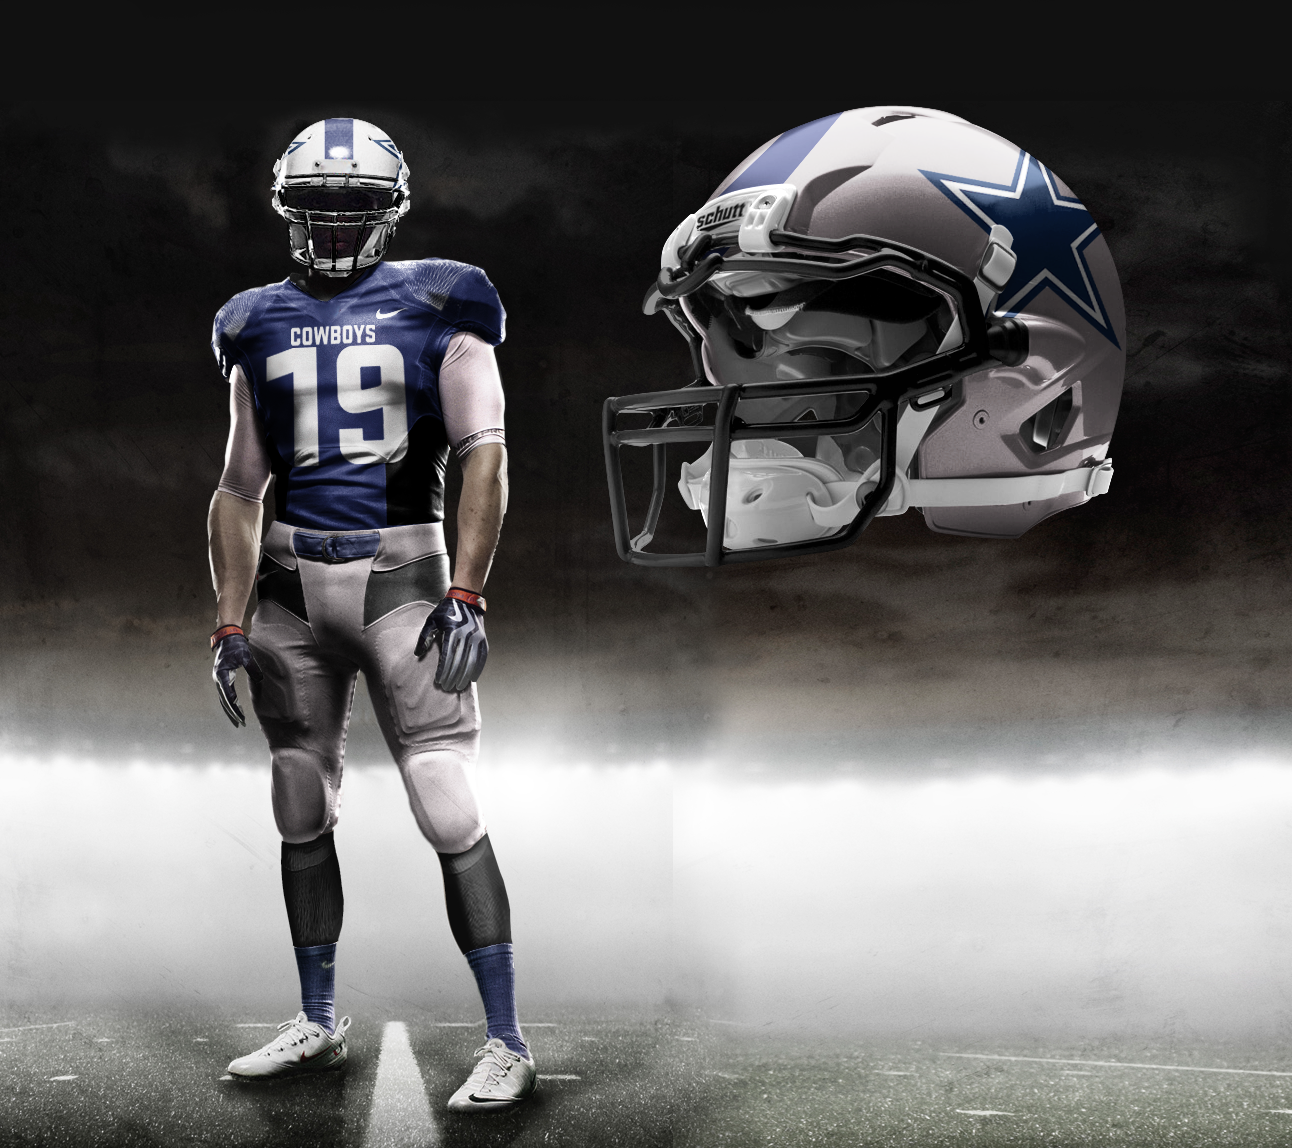 c3cf98a33 Nike Pro Combat NFL Uniforms: Check Out Fake Unis That Tricked Fans ...